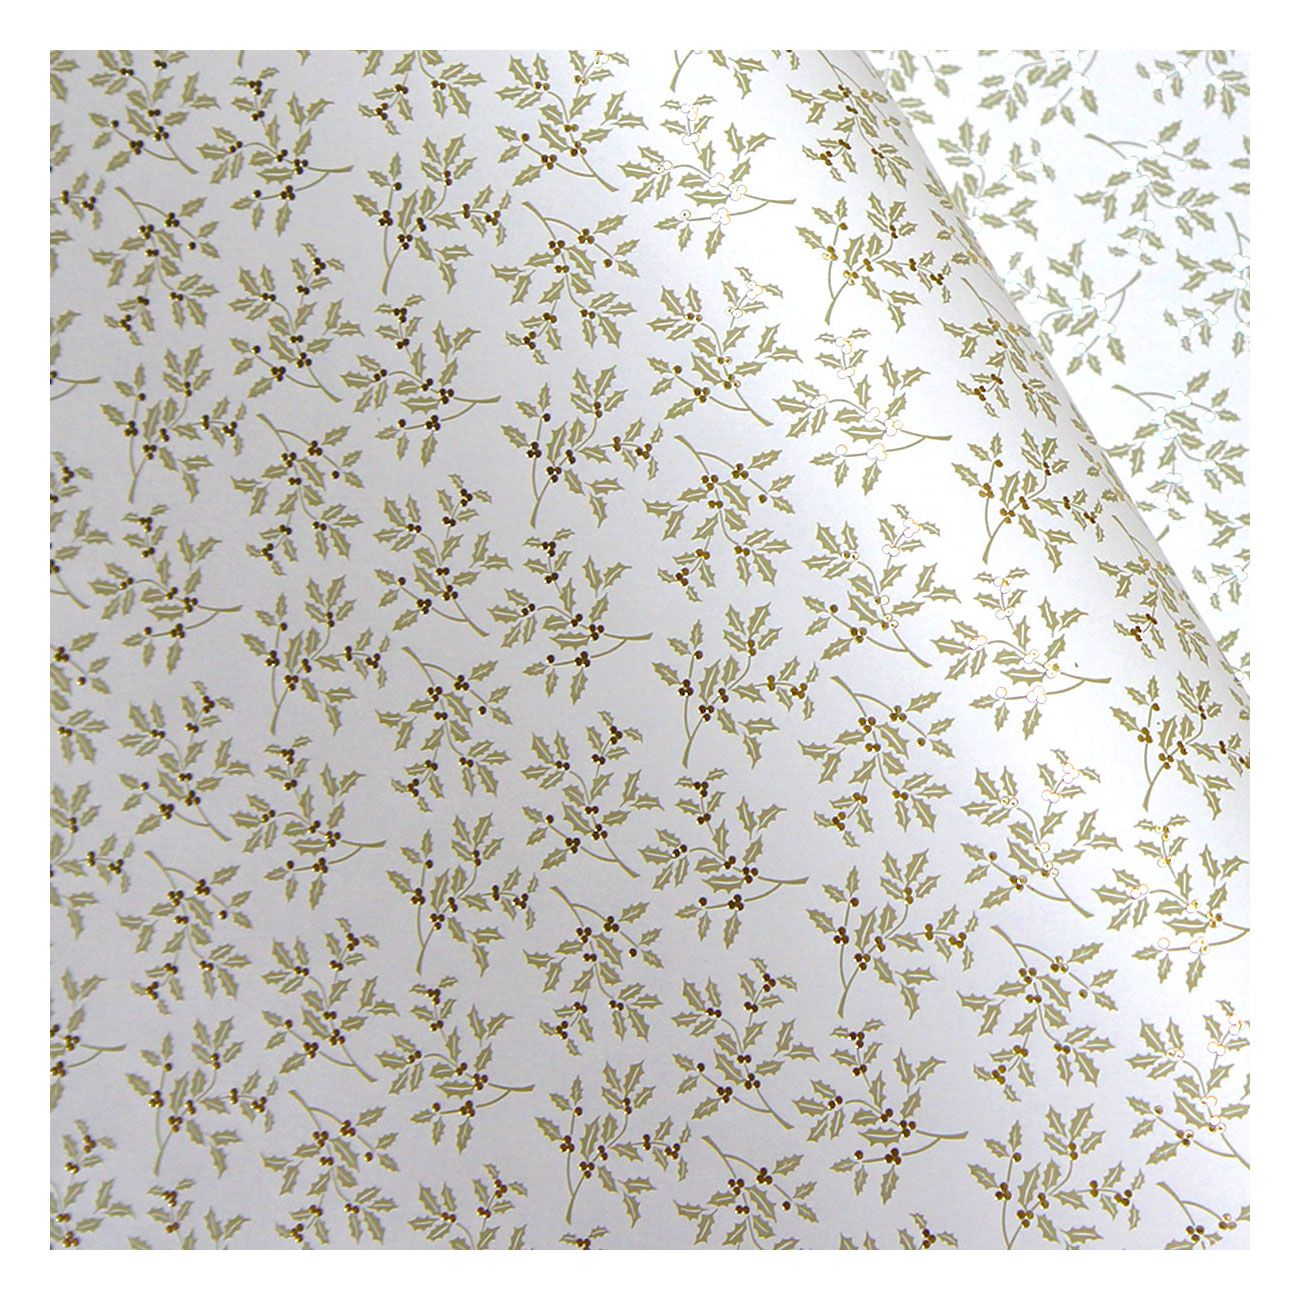 "<p>This holiday plant doesn't scream ""Christmas!"" when done in an elegant cream and gold color palette. (Holly Bisque Letterpress Foil, $5.50 per sheet&#x3B; <a href=""http://www.luxepaperie.com/tassottipaper3.html"" data-tracking-id=""recirc-text-link"" target=""_blank"">luxepaperie.com</a>)</p>"